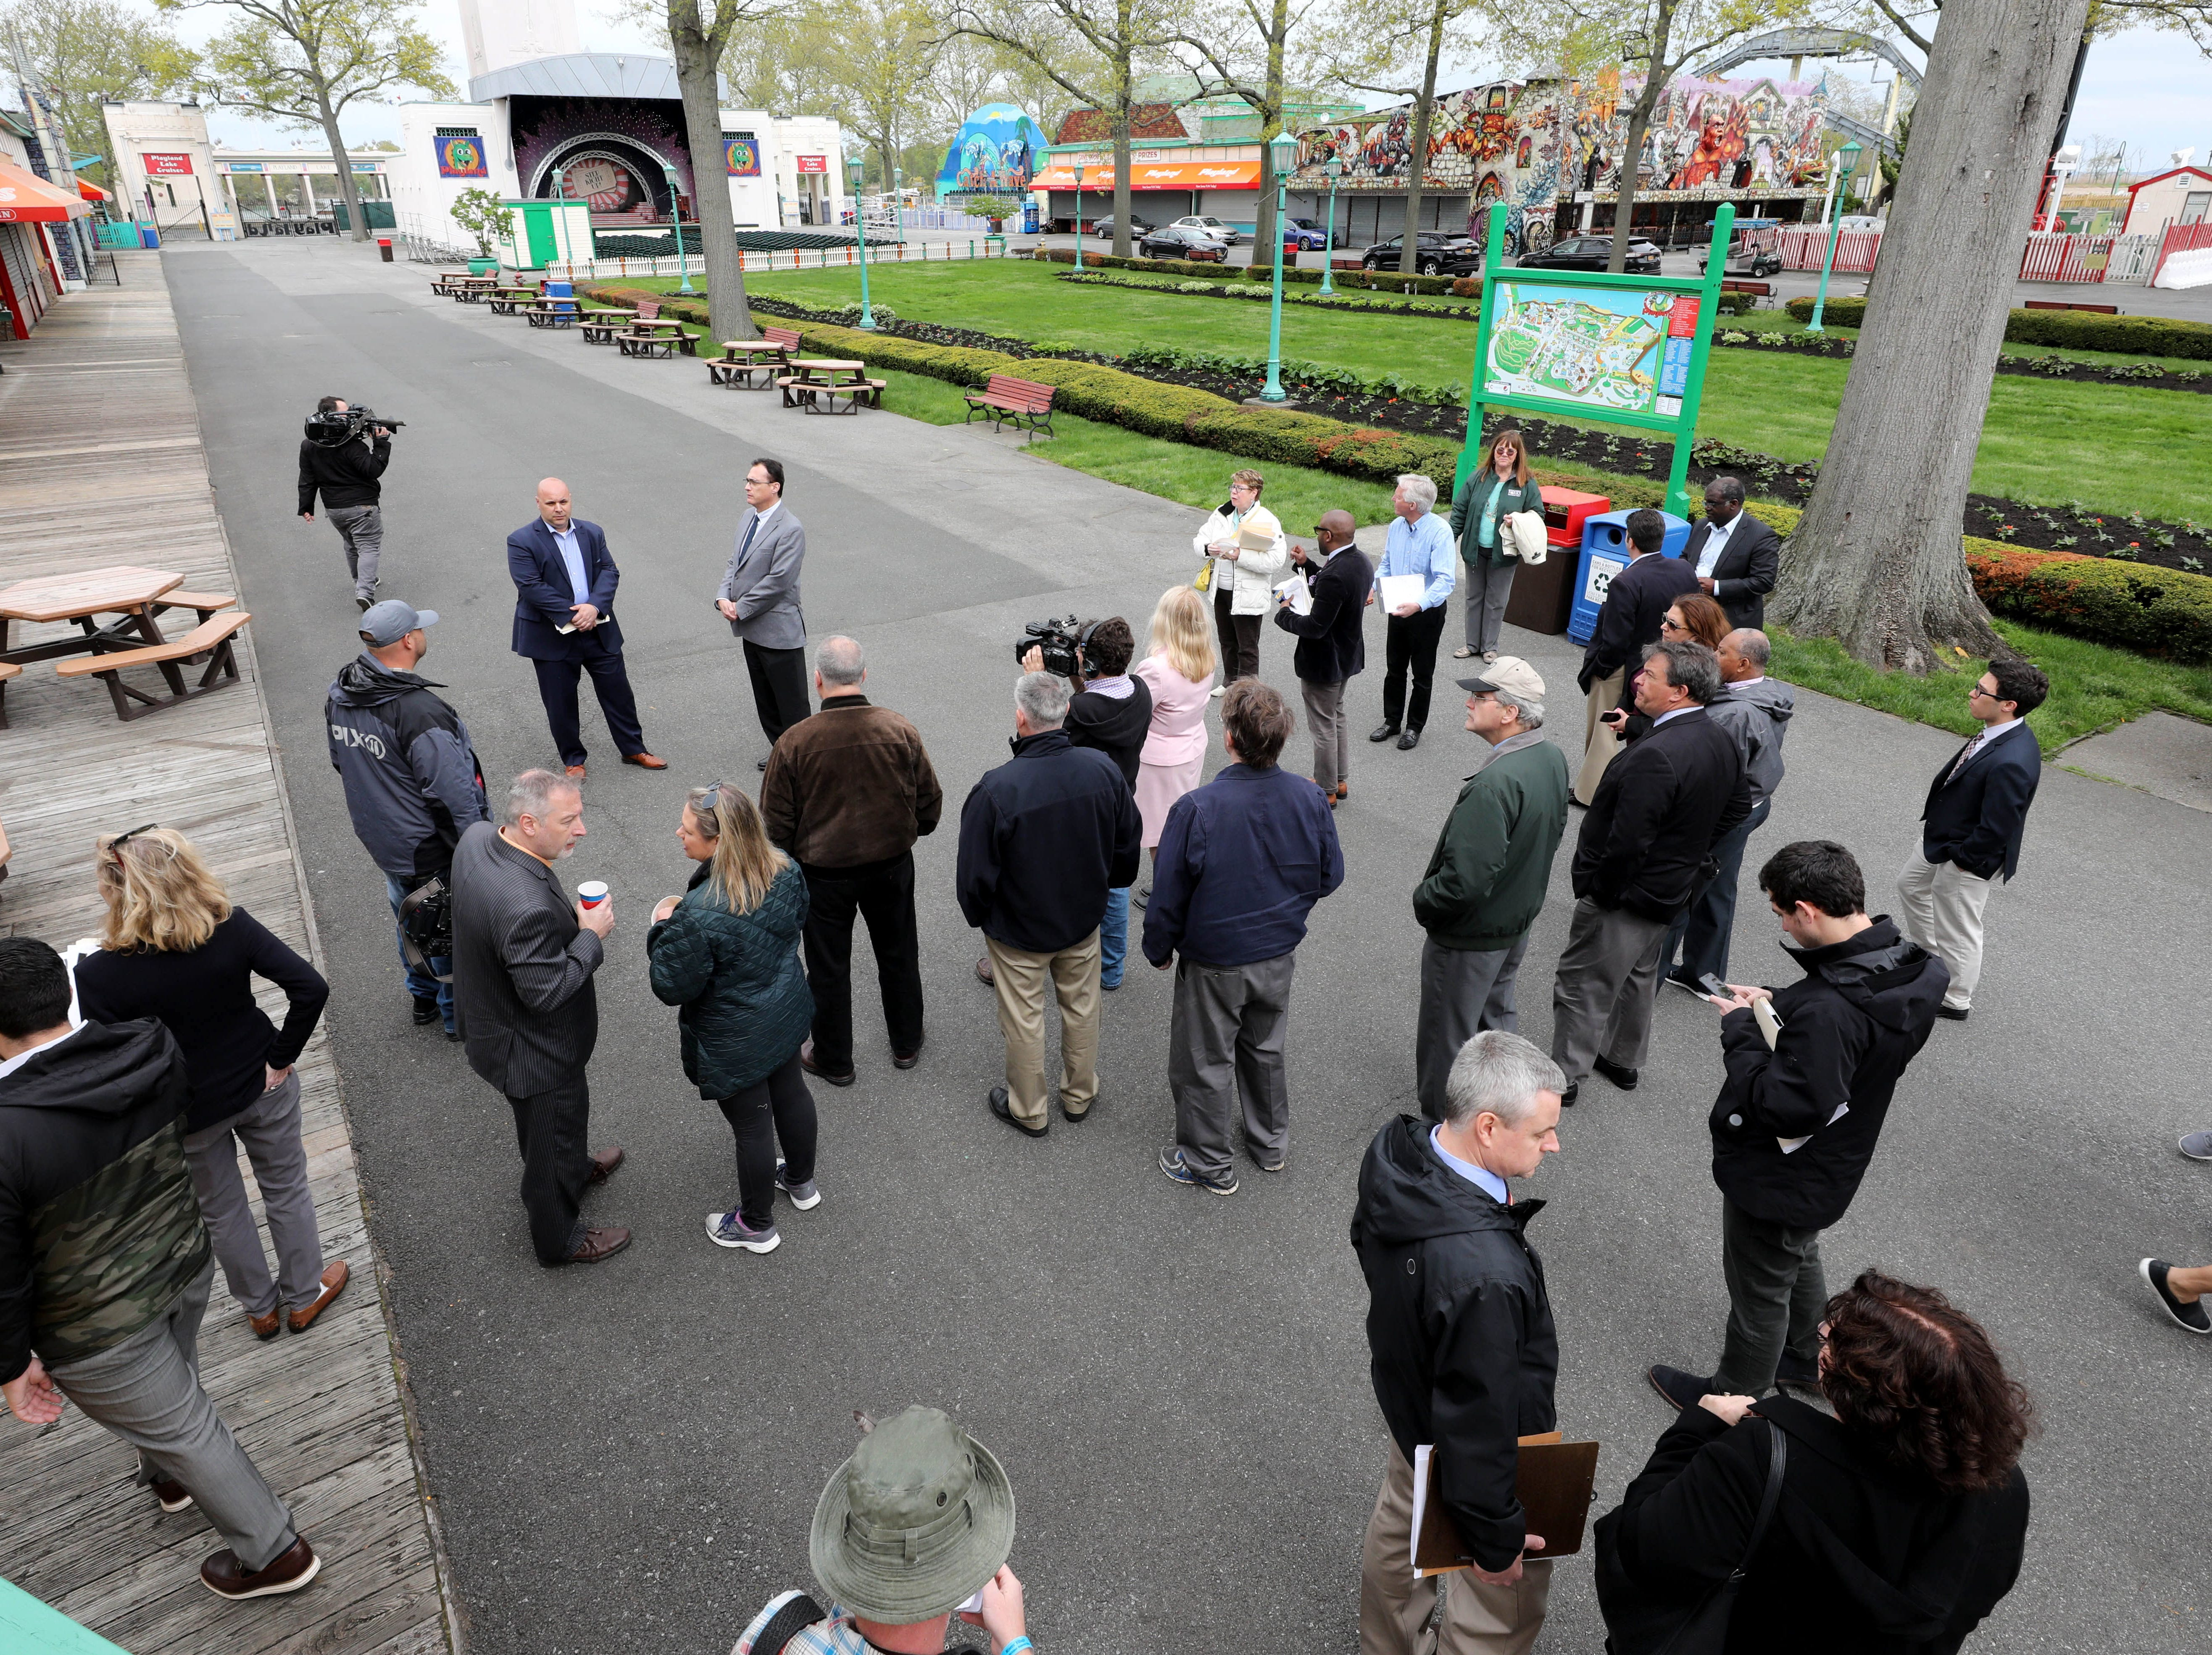 """Frank Carrieri, the general manager at Playland, and Peter Tartaglia, the deputy commissioner of Westchester County Parks, lead a tour during a """"ride and food safety tour"""" for the media, at Playland in Rye, May 9, 2019."""